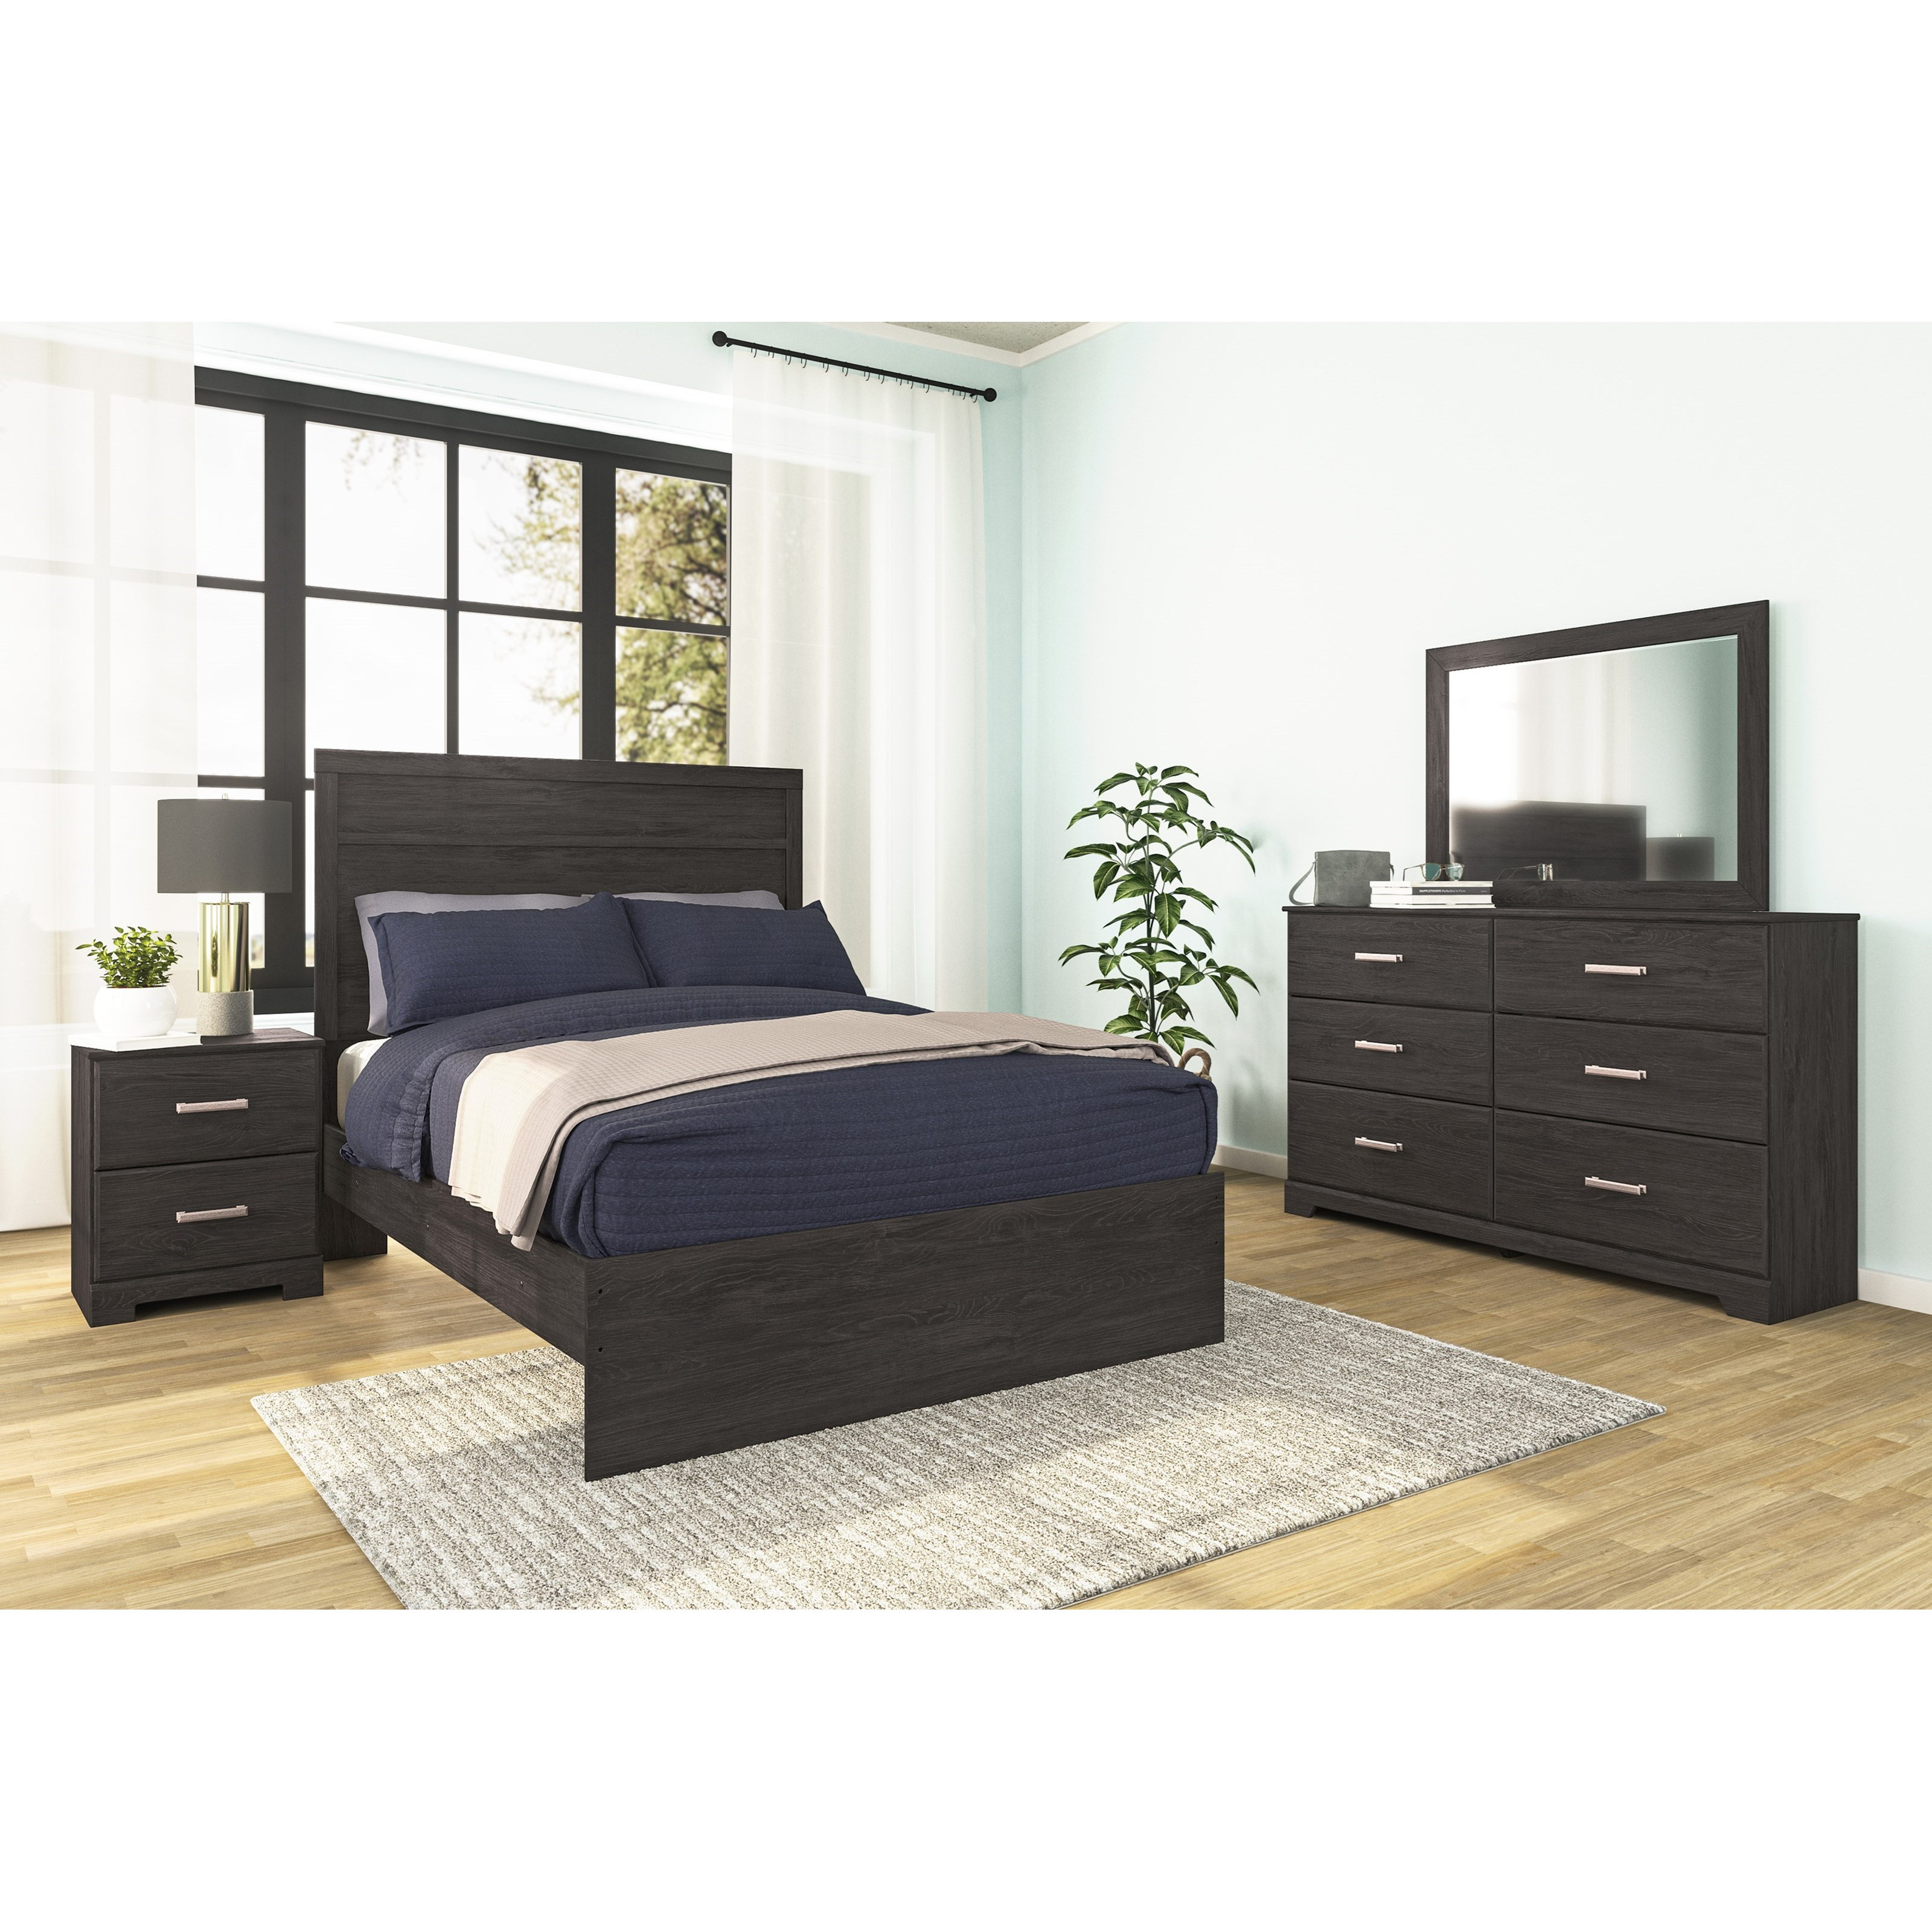 Belachime Full Bedroom Group by Signature Design by Ashley at Lapeer Furniture & Mattress Center